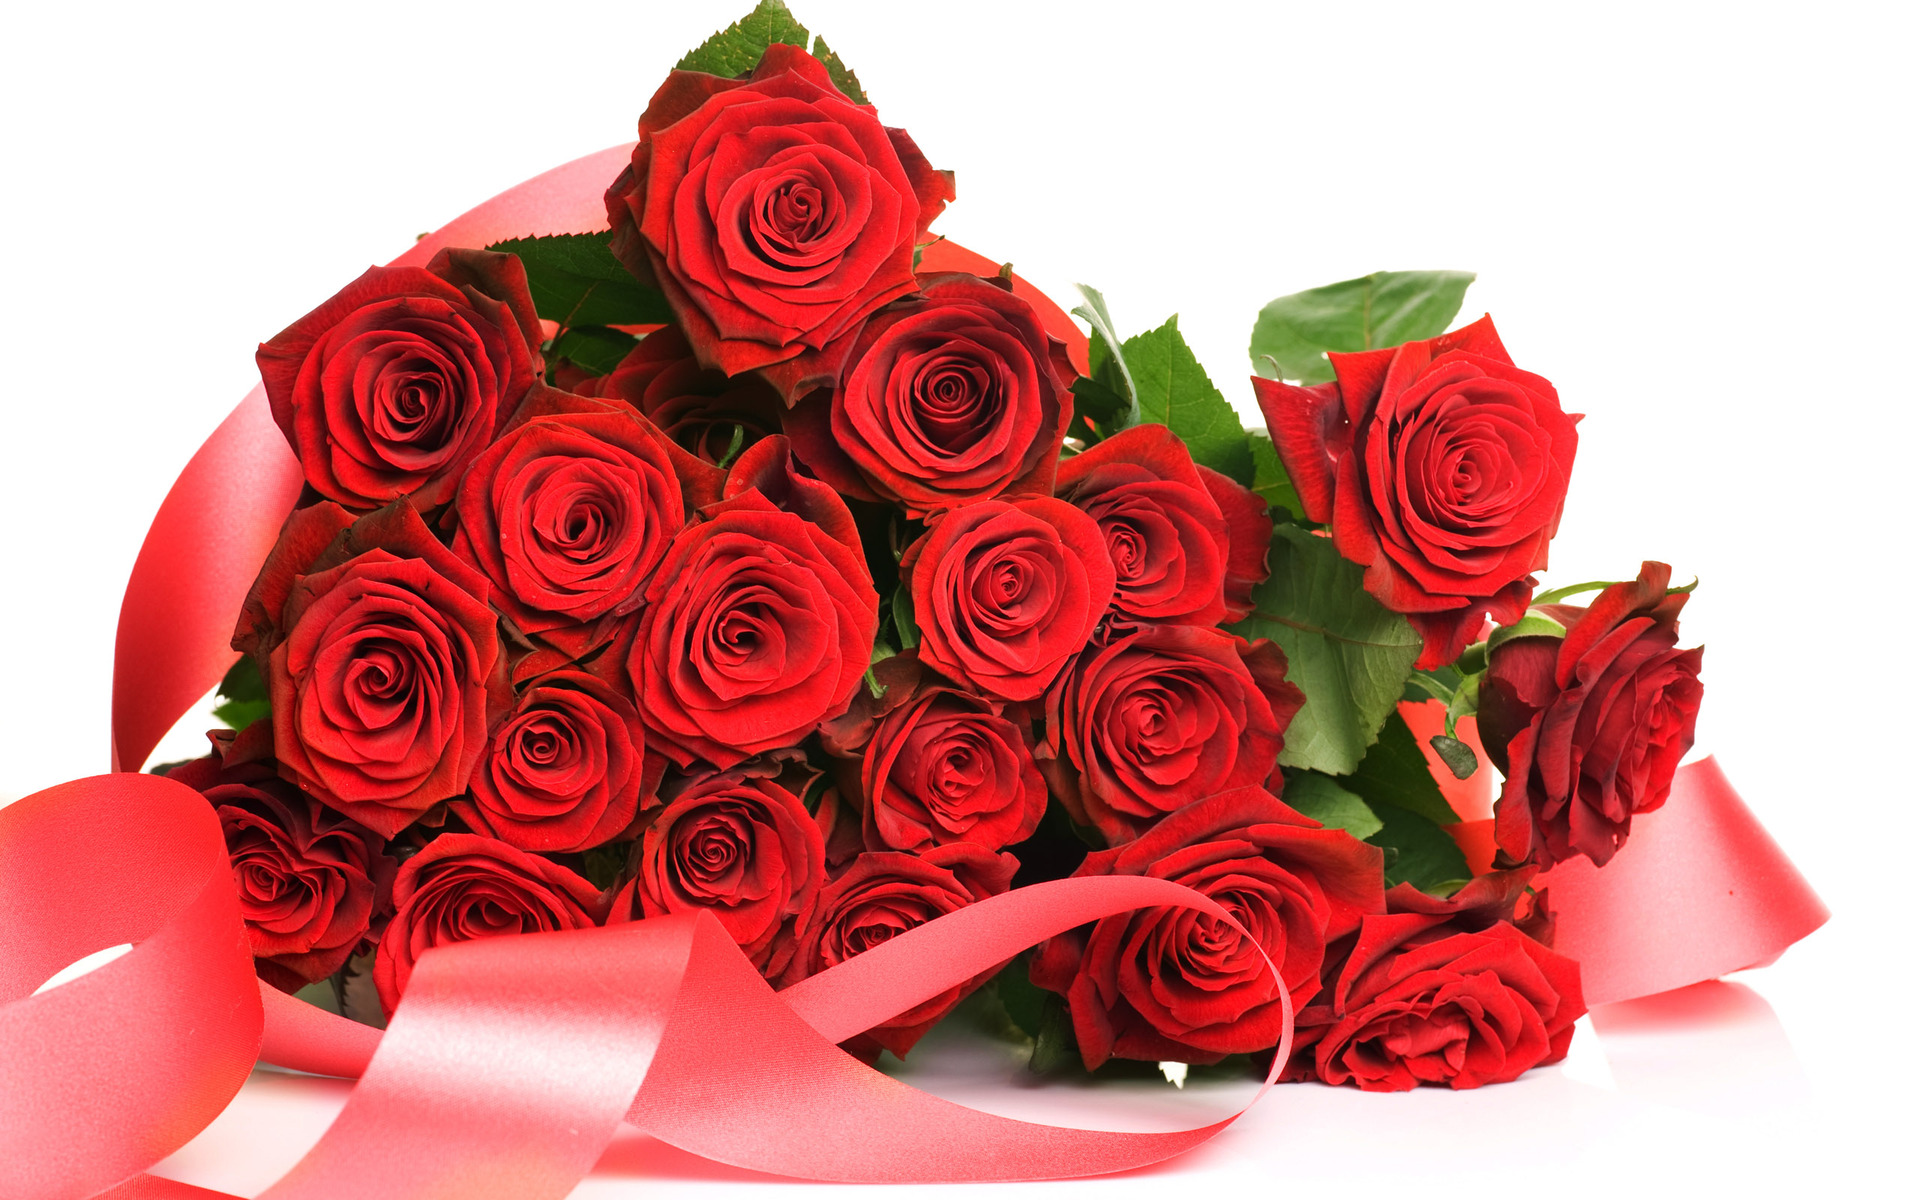 Top 10 Beautiful Rose Flowers Picture